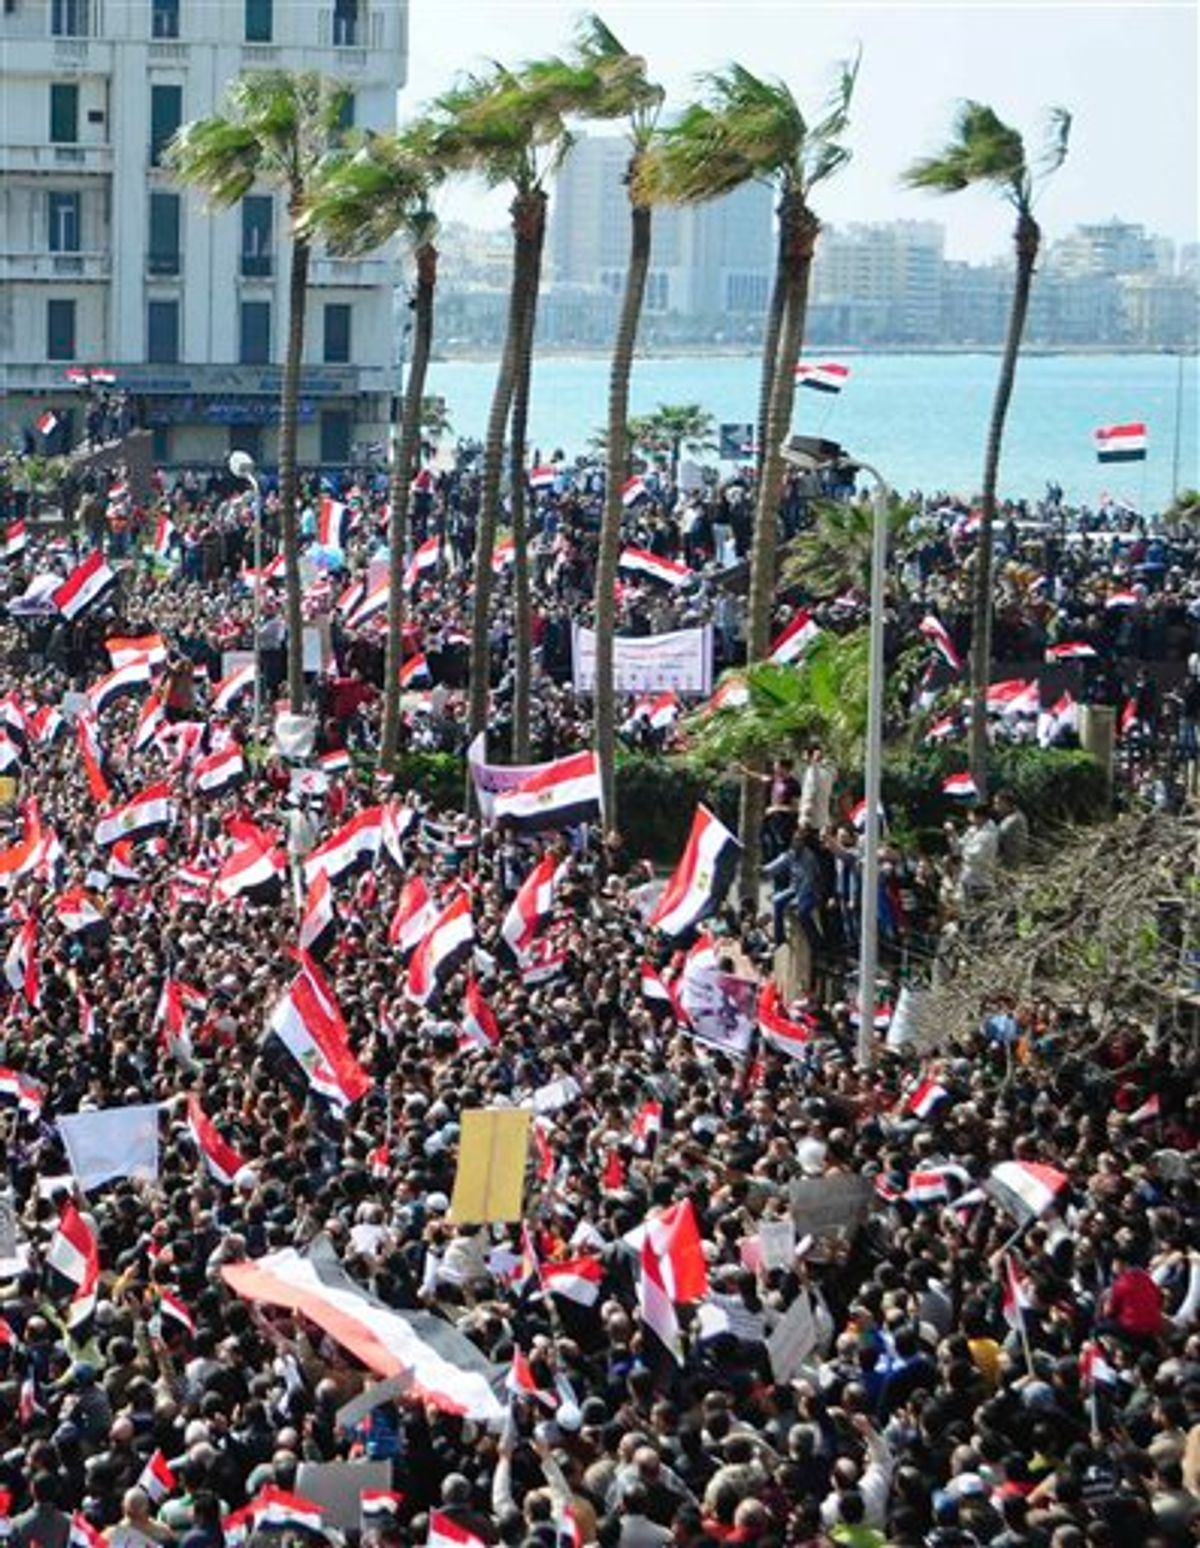 Thousands of Egyptian anti-government protesters march Alexandria, Egypt, Friday, Feb. 11, 2011. Egypt's military threw its weight Friday behind President Hosni Mubarak's plan to stay in office through September elections while protesters fanned out to the presidential palace in Cairo and other key symbols of the authoritarian regime in a new push to force the leader to step down immediately. The statement by the Armed Forces Supreme Council - its second in two days - was a blow to many protesters who had called on the military to take action to push out Mubarak after his latest refusal to step down. (AP Photo/ Tarek Fawzy) (AP)